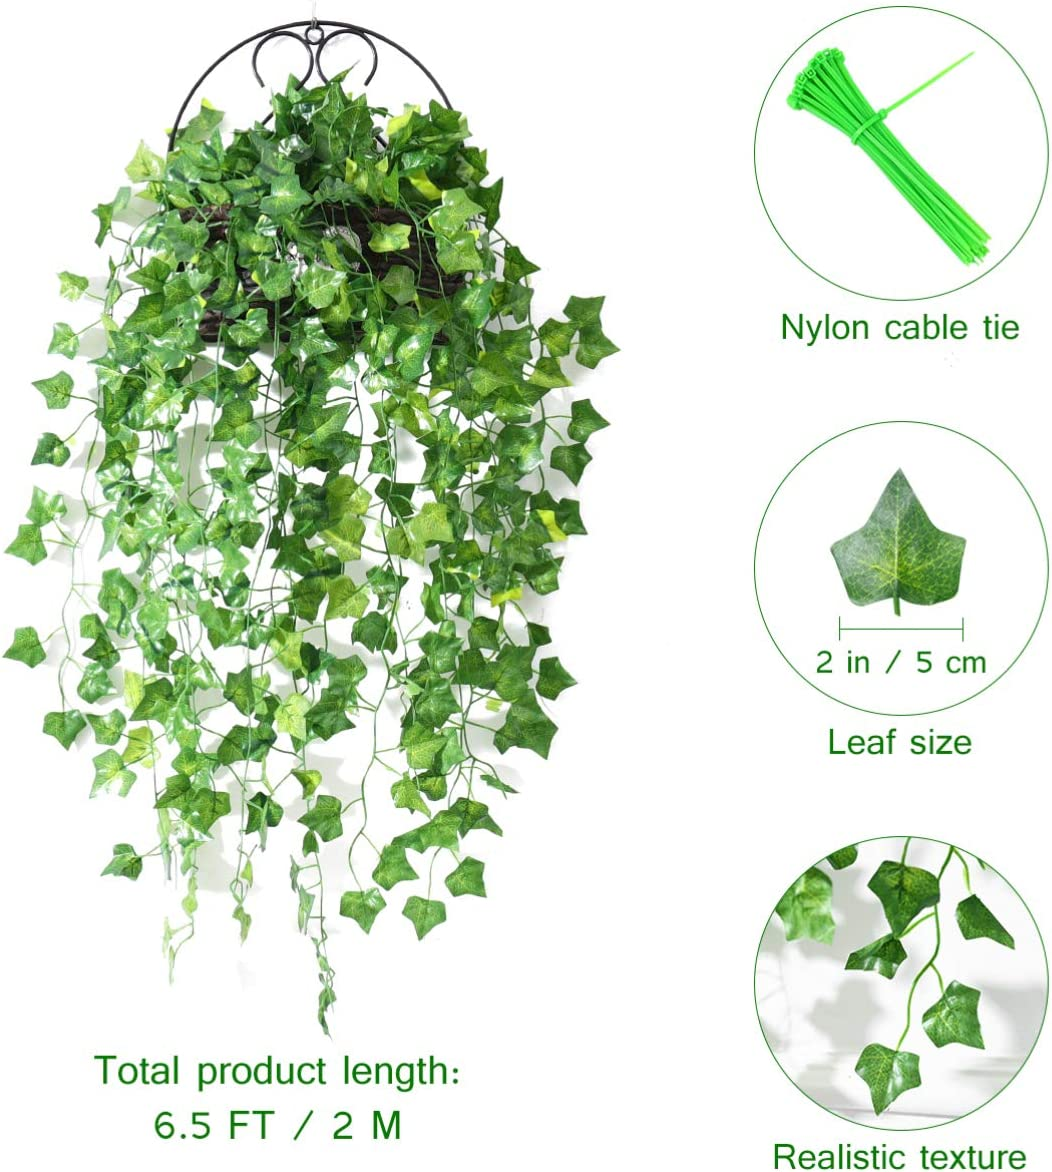 Artificial Ivy Garland, 118 FT Fake Ivy Leaves Fake Leaf Plants Vine Hanging Garland Ivy Foliage Leaves for Party Home Decor